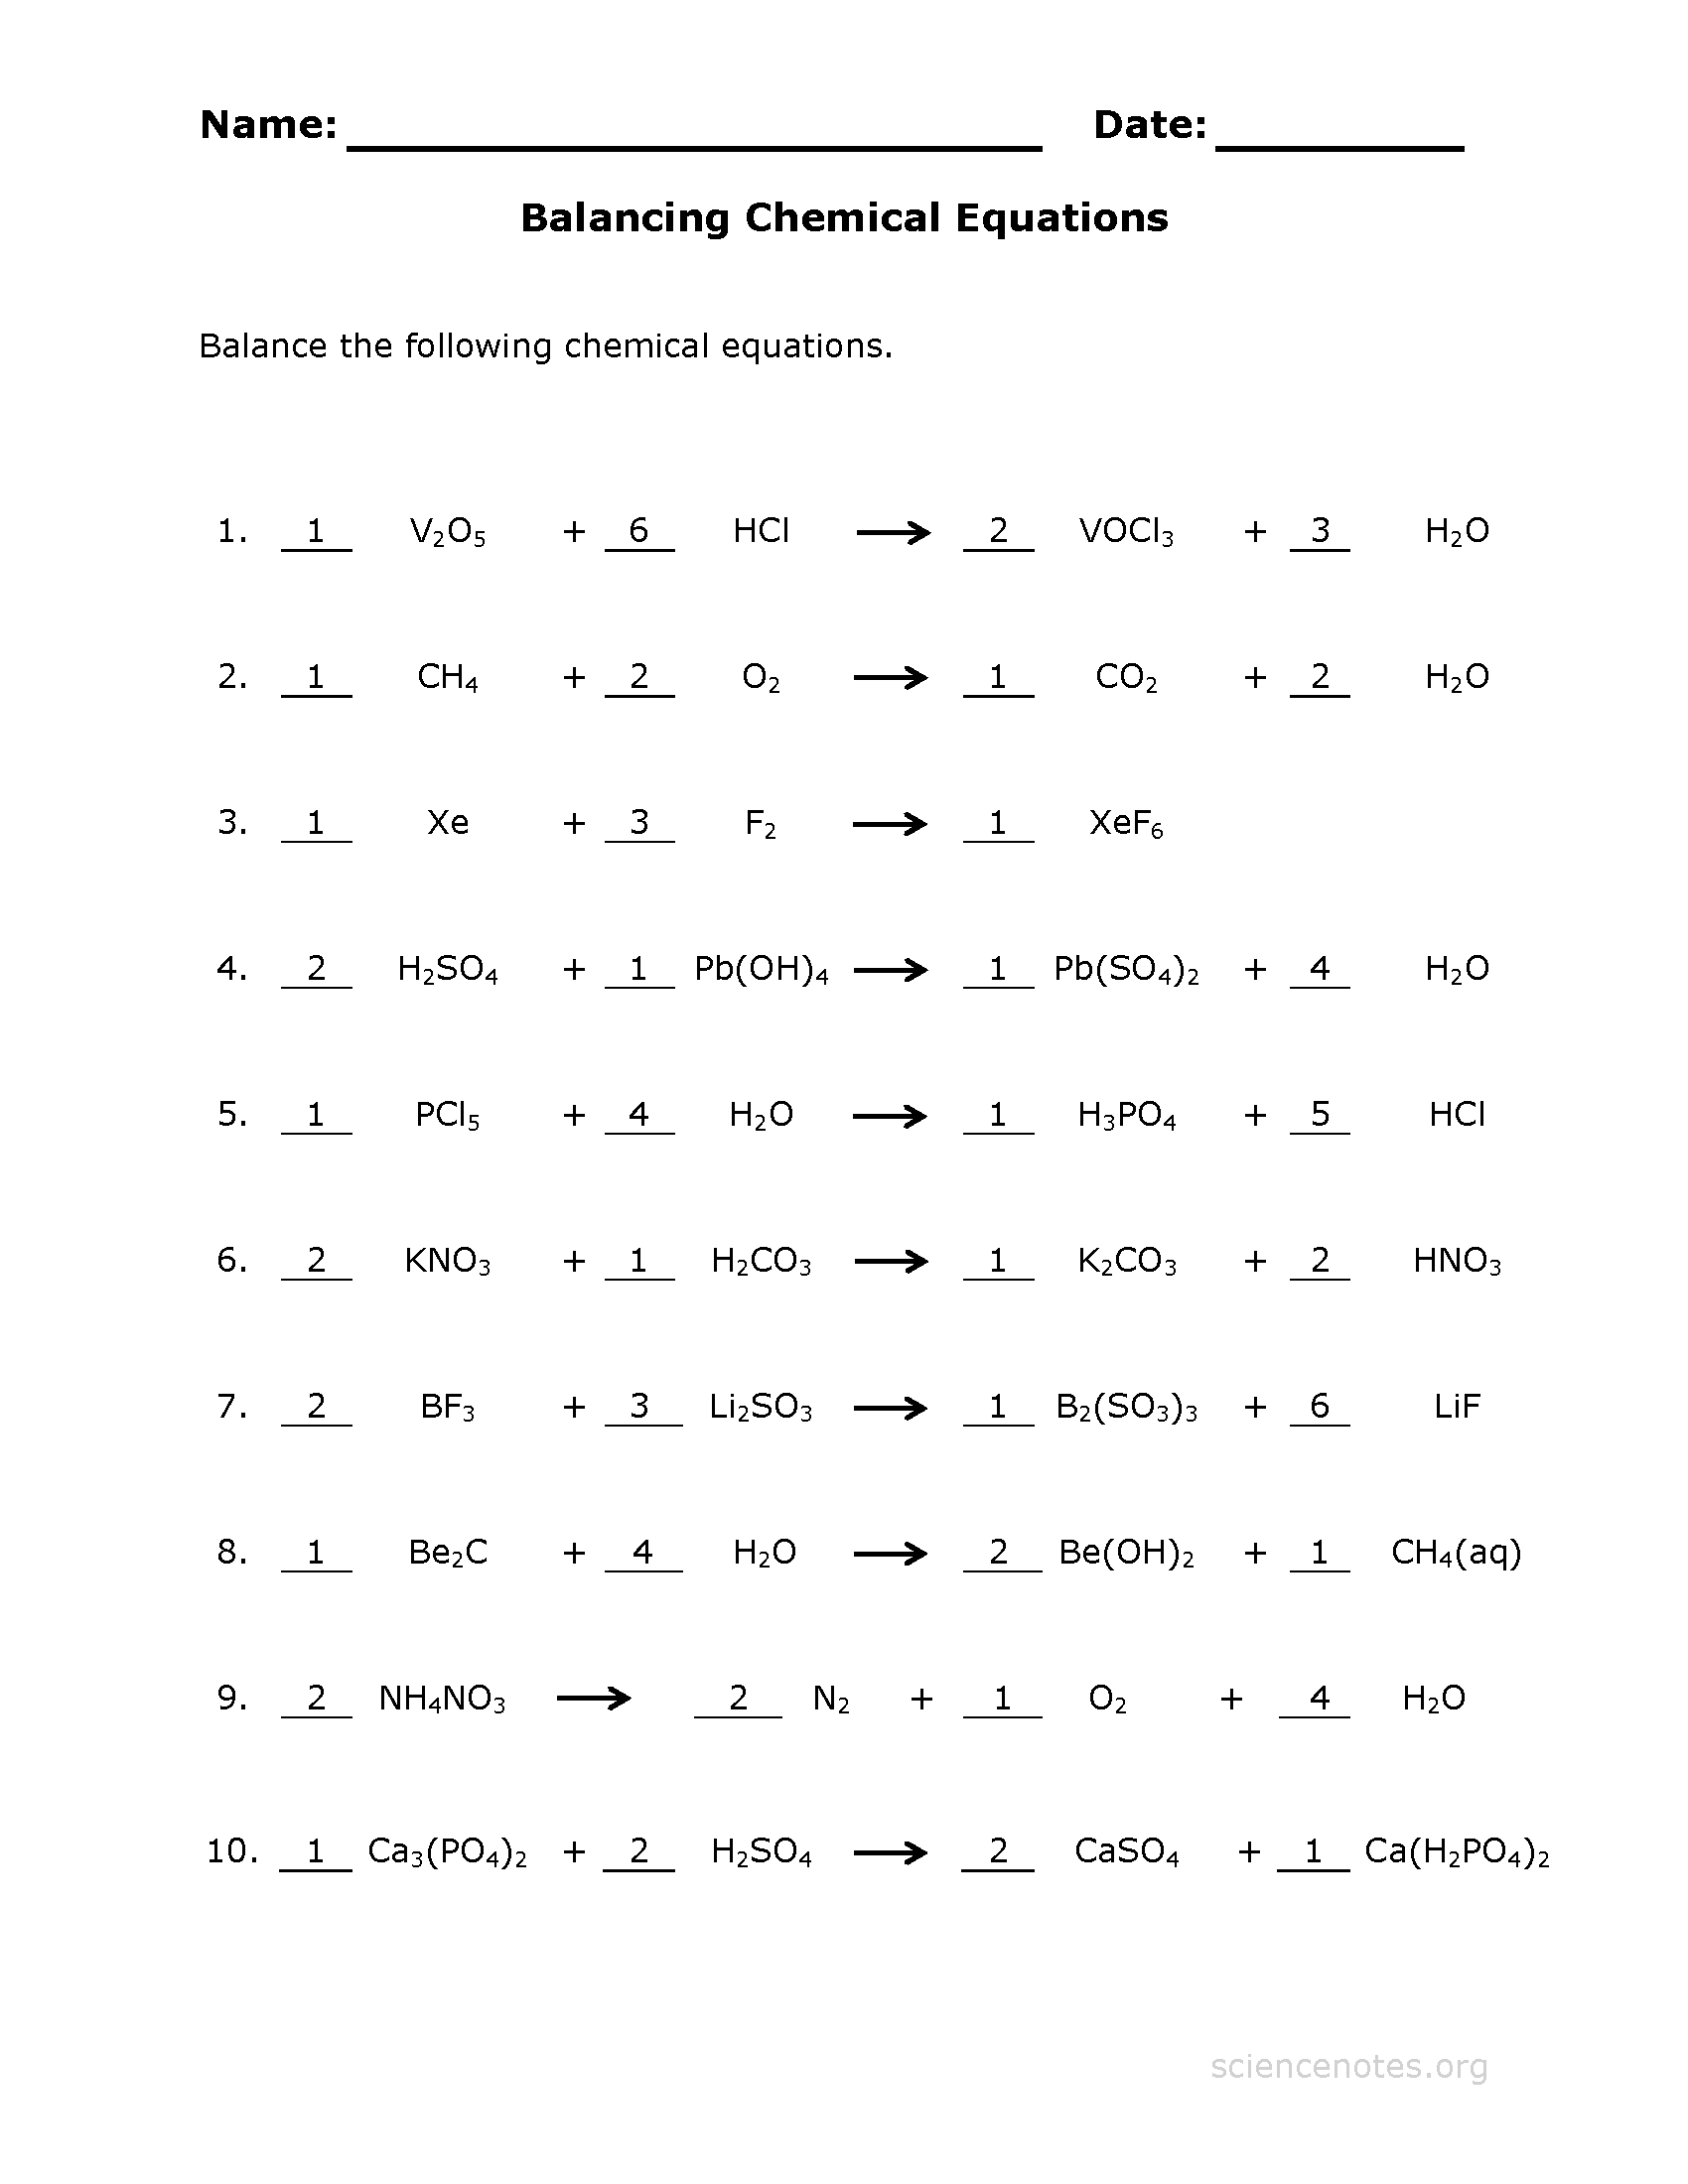 Balancing Chemical Equations Worksheet 3 Answers Sharebrowse – Balancing Equations Worksheet Answers